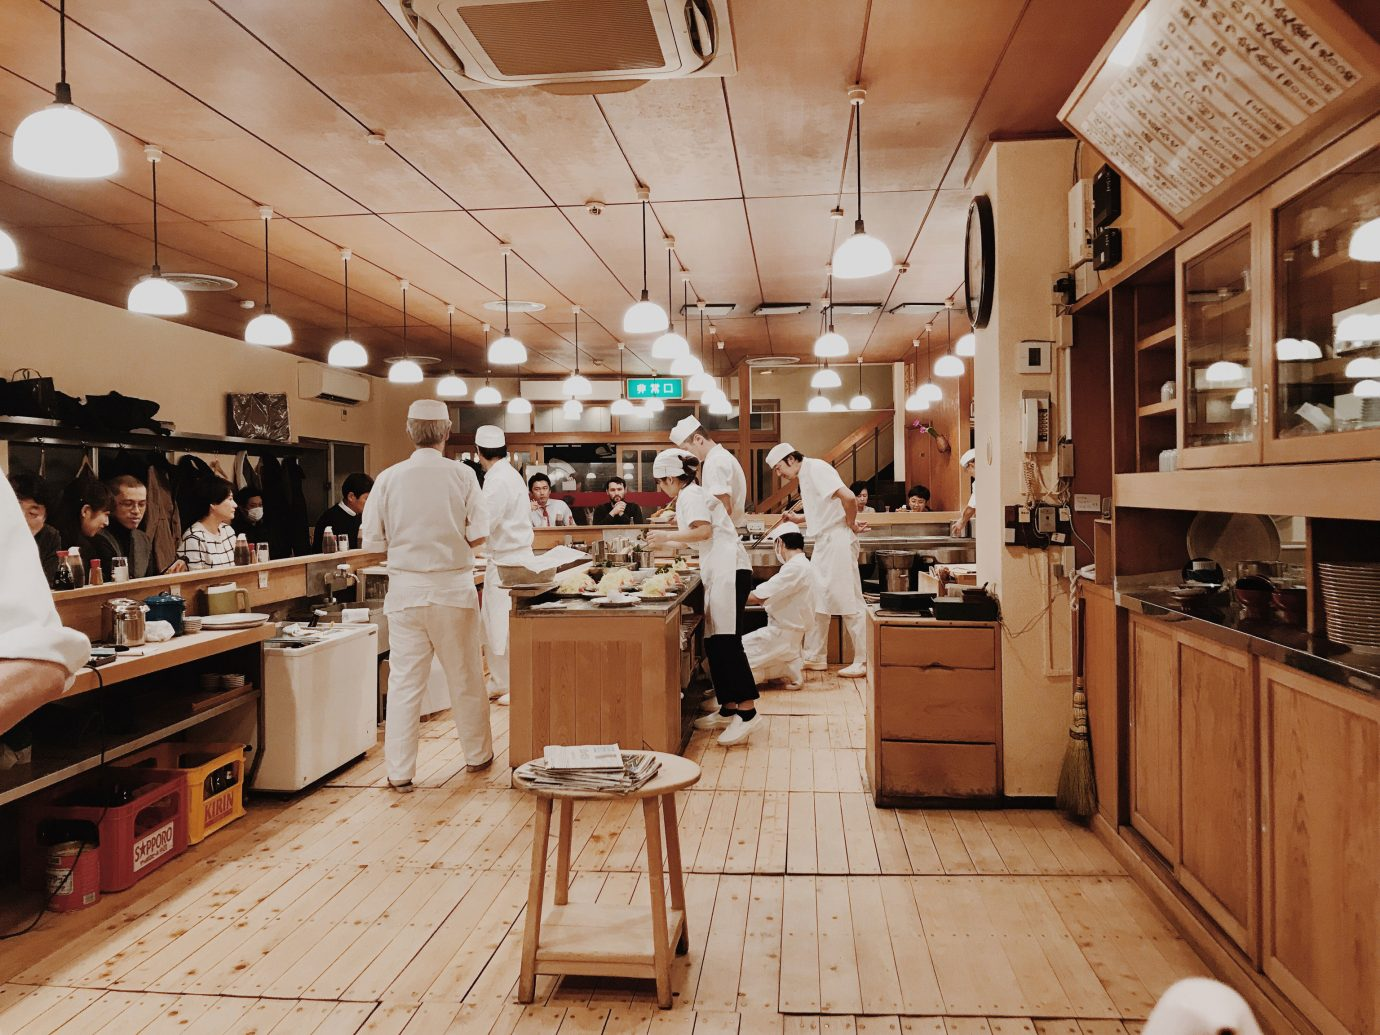 Influencers + Tastemakers Japan Photo Diary Tokyo indoor floor interior design ceiling café restaurant furniture